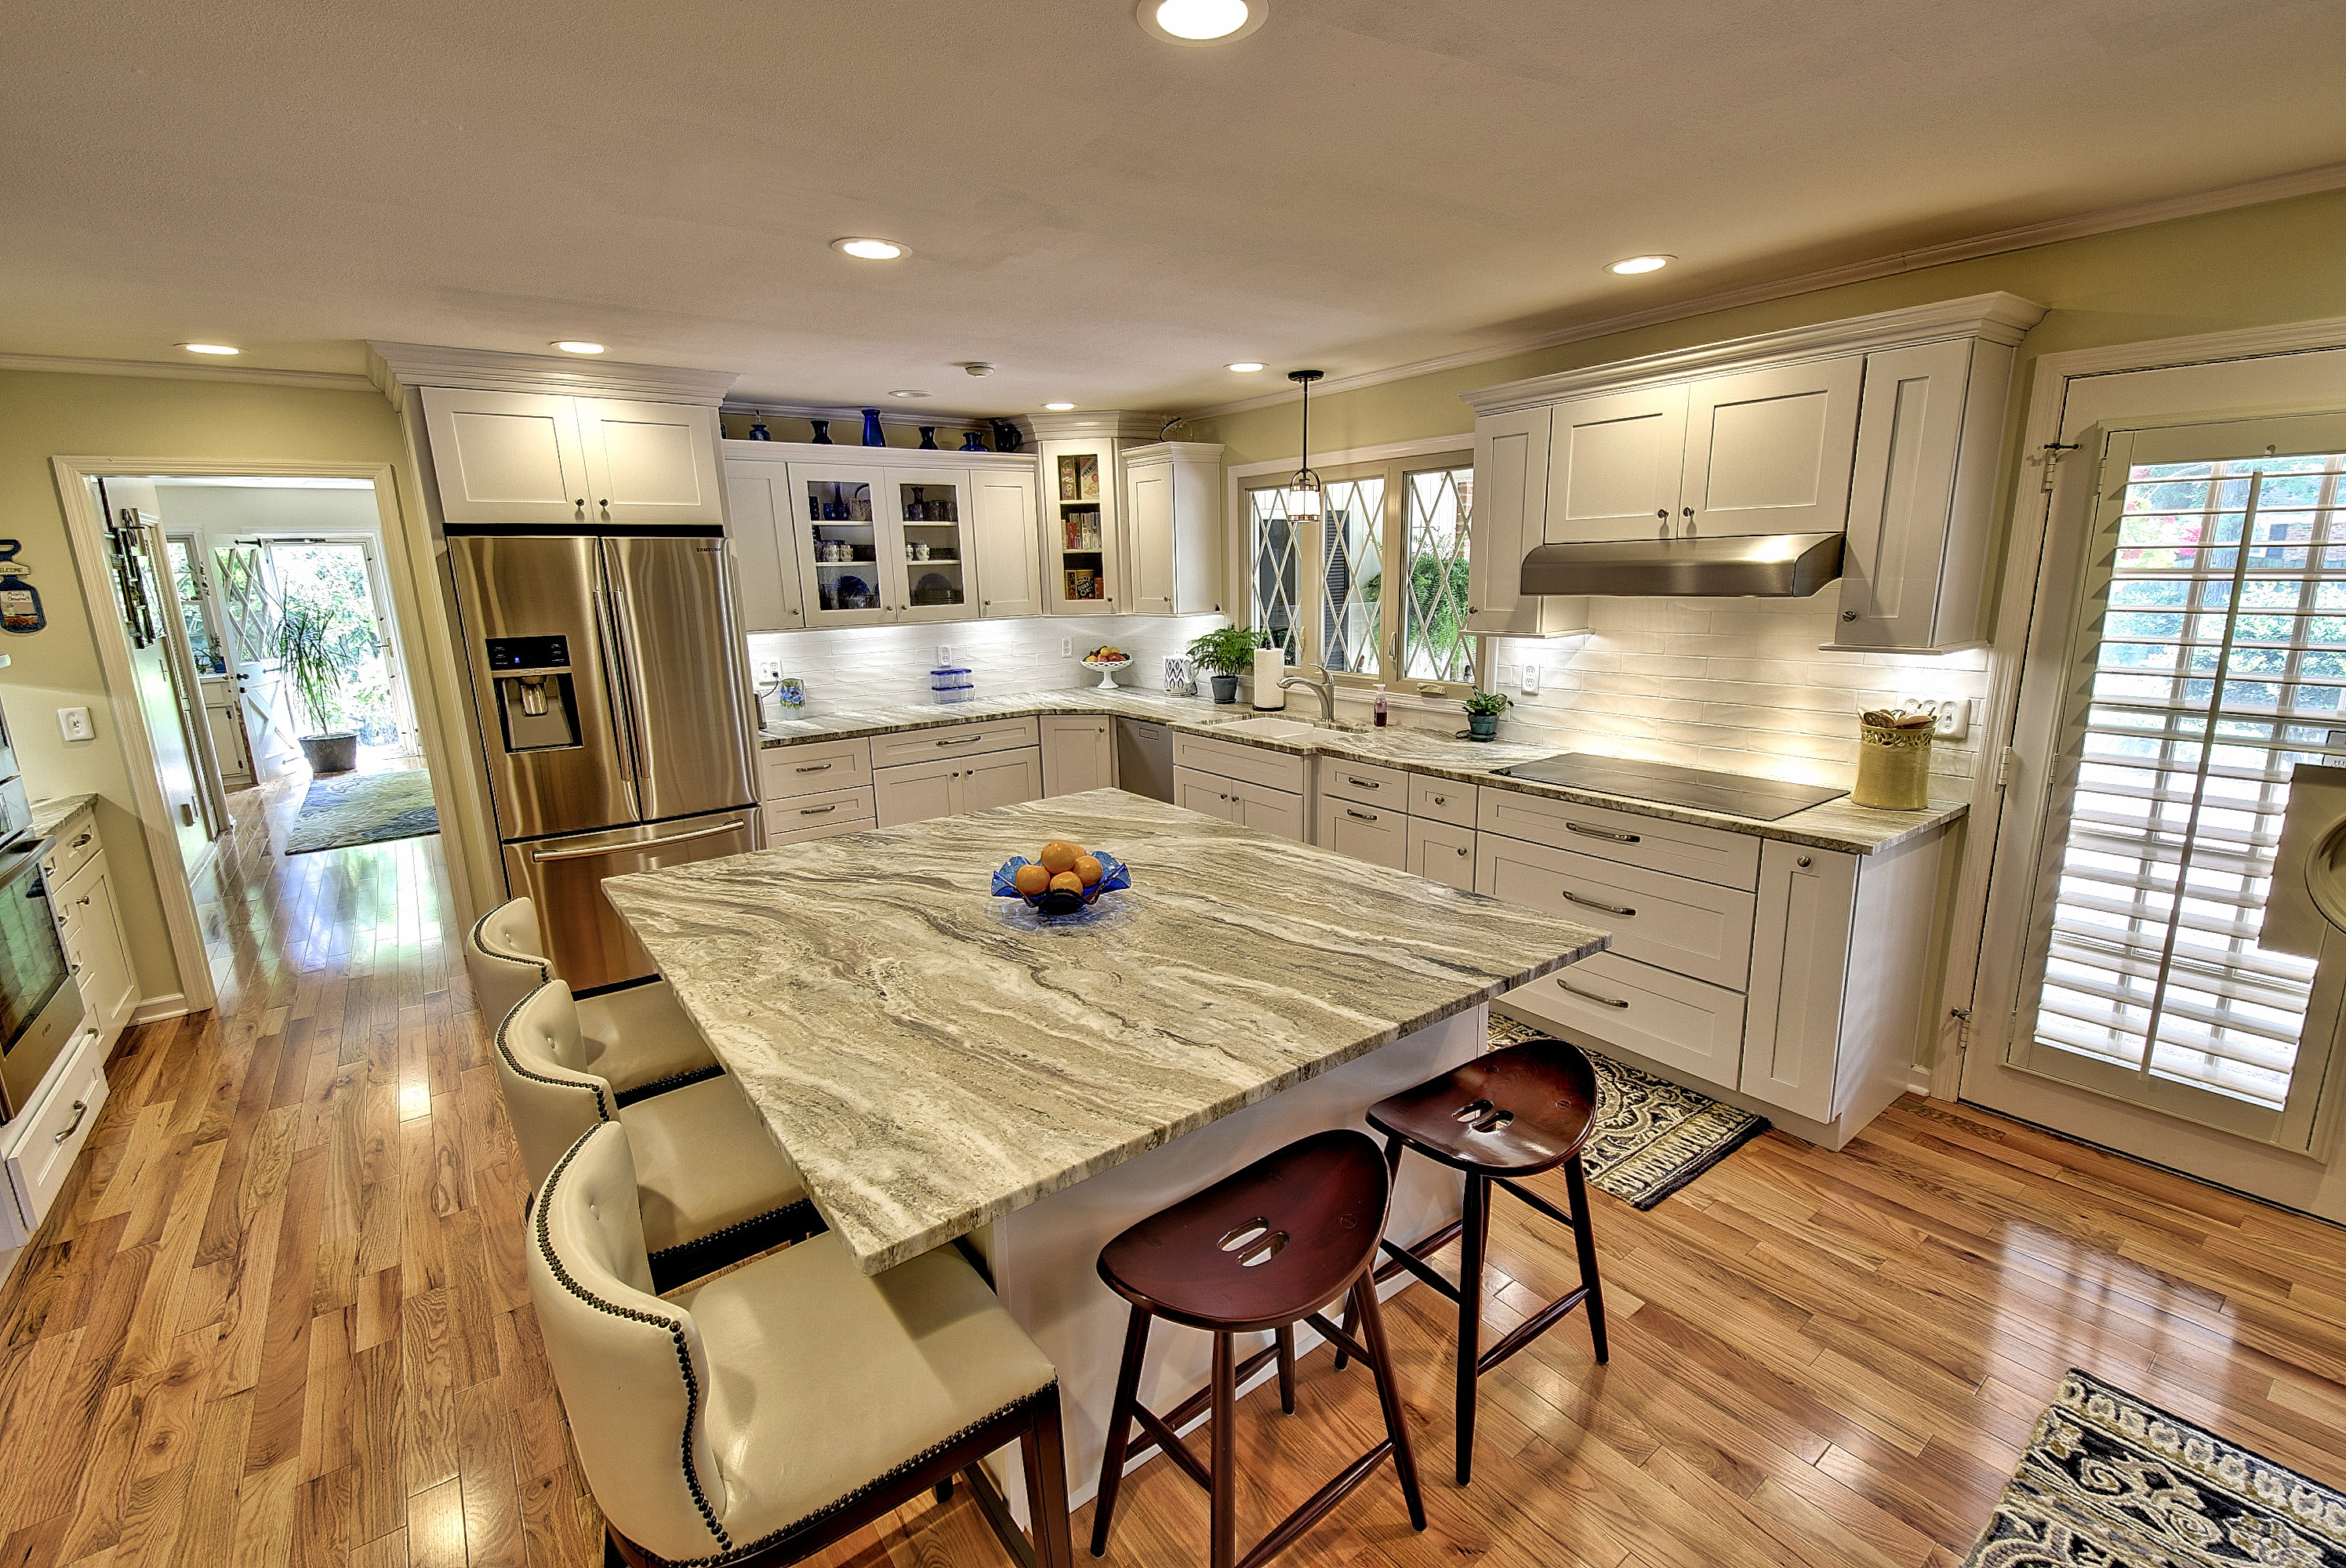 Johnson City Cabinet Retailer   Kitchens By Design